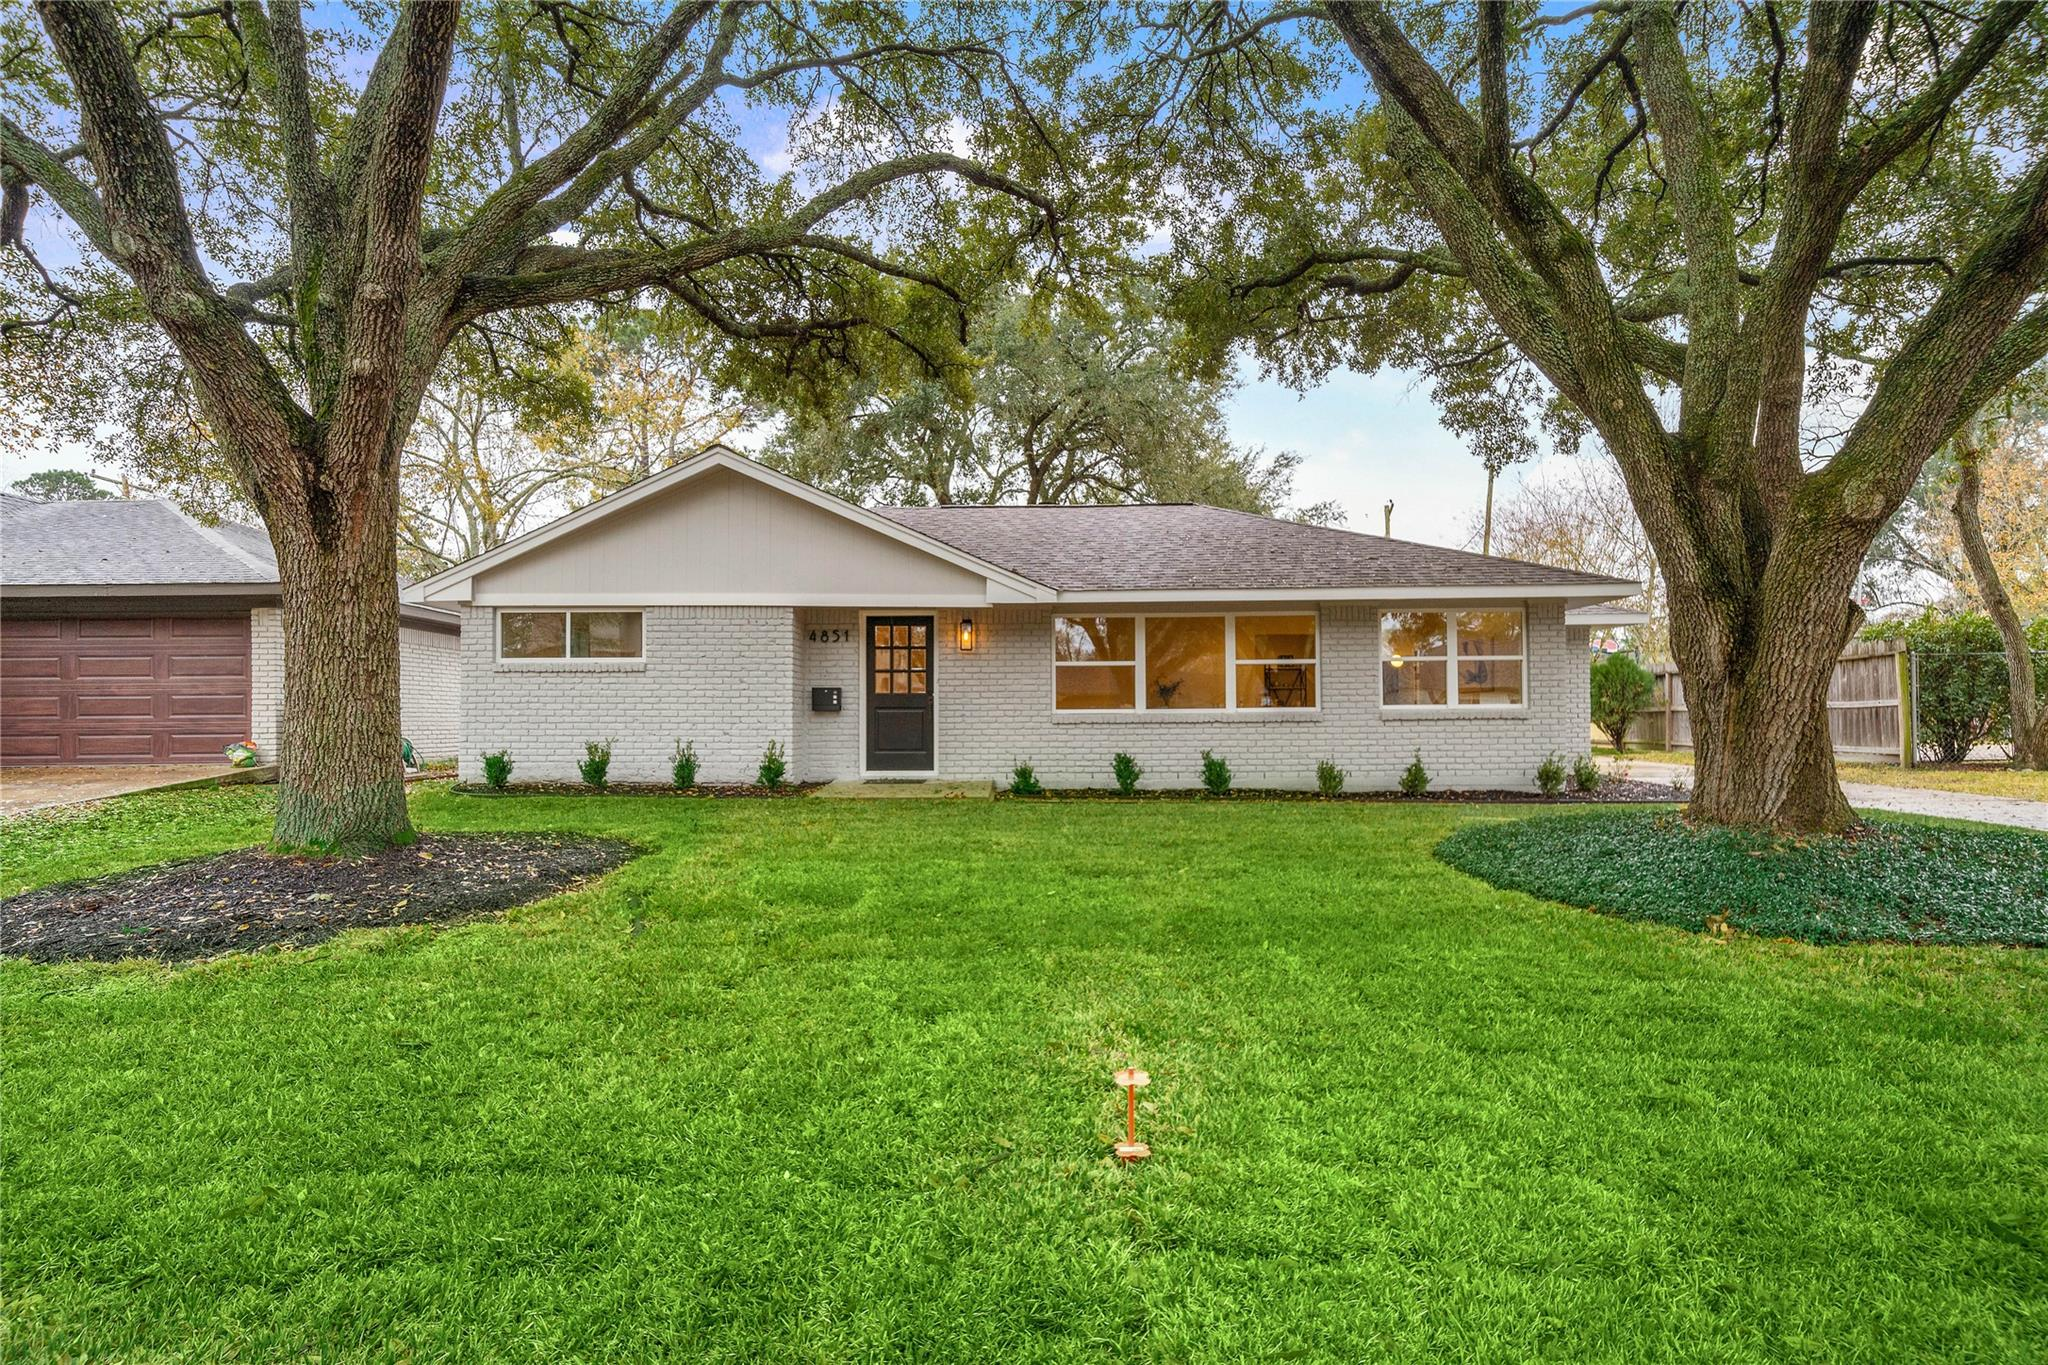 4851 Mcdermed Drive Property Photo - Houston, TX real estate listing